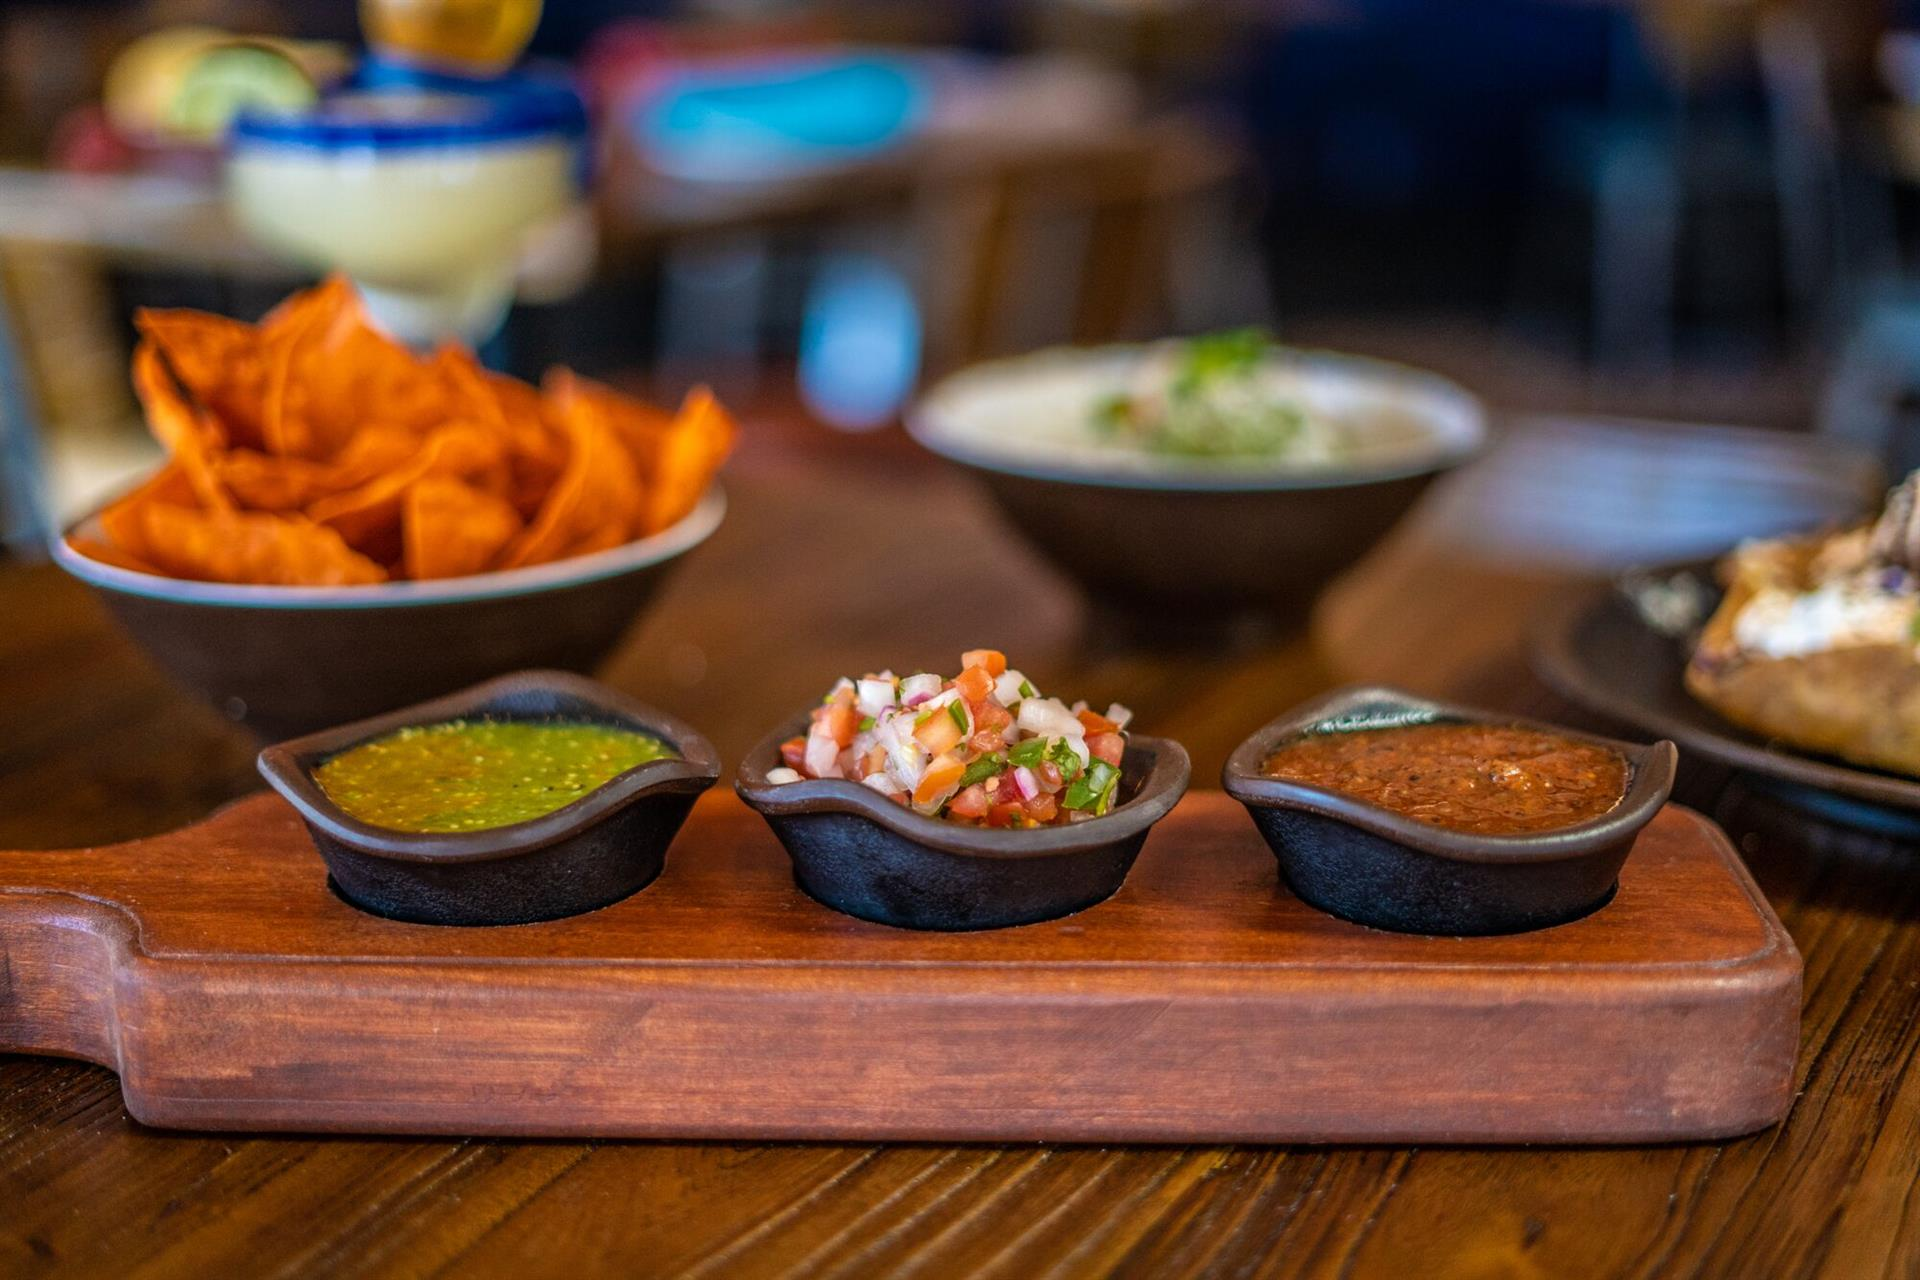 Trio of salsa and chips - Rico de gallo, salsa verde and salsa roja